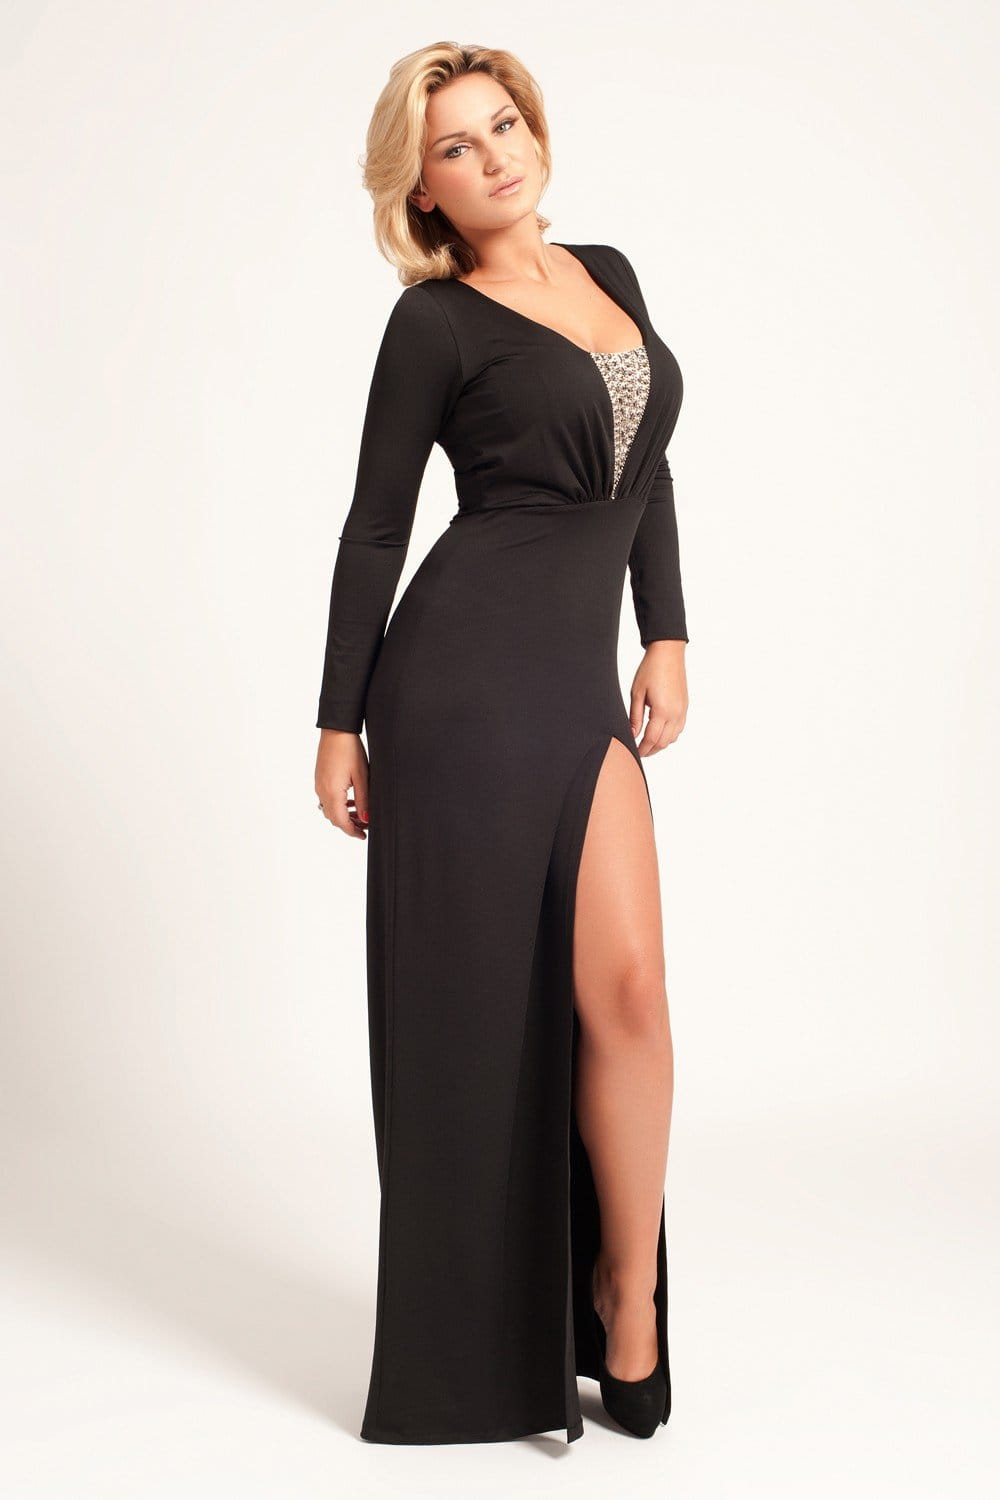 Women's Maxi and long dresses Elegant and ultra-flattering on any figure, the maxi dress is a go-to for relaxed vacation style. Paired with embellished flat sandals or matched with a statement clutch and platforms, a maxi dress can be worn by day or night.